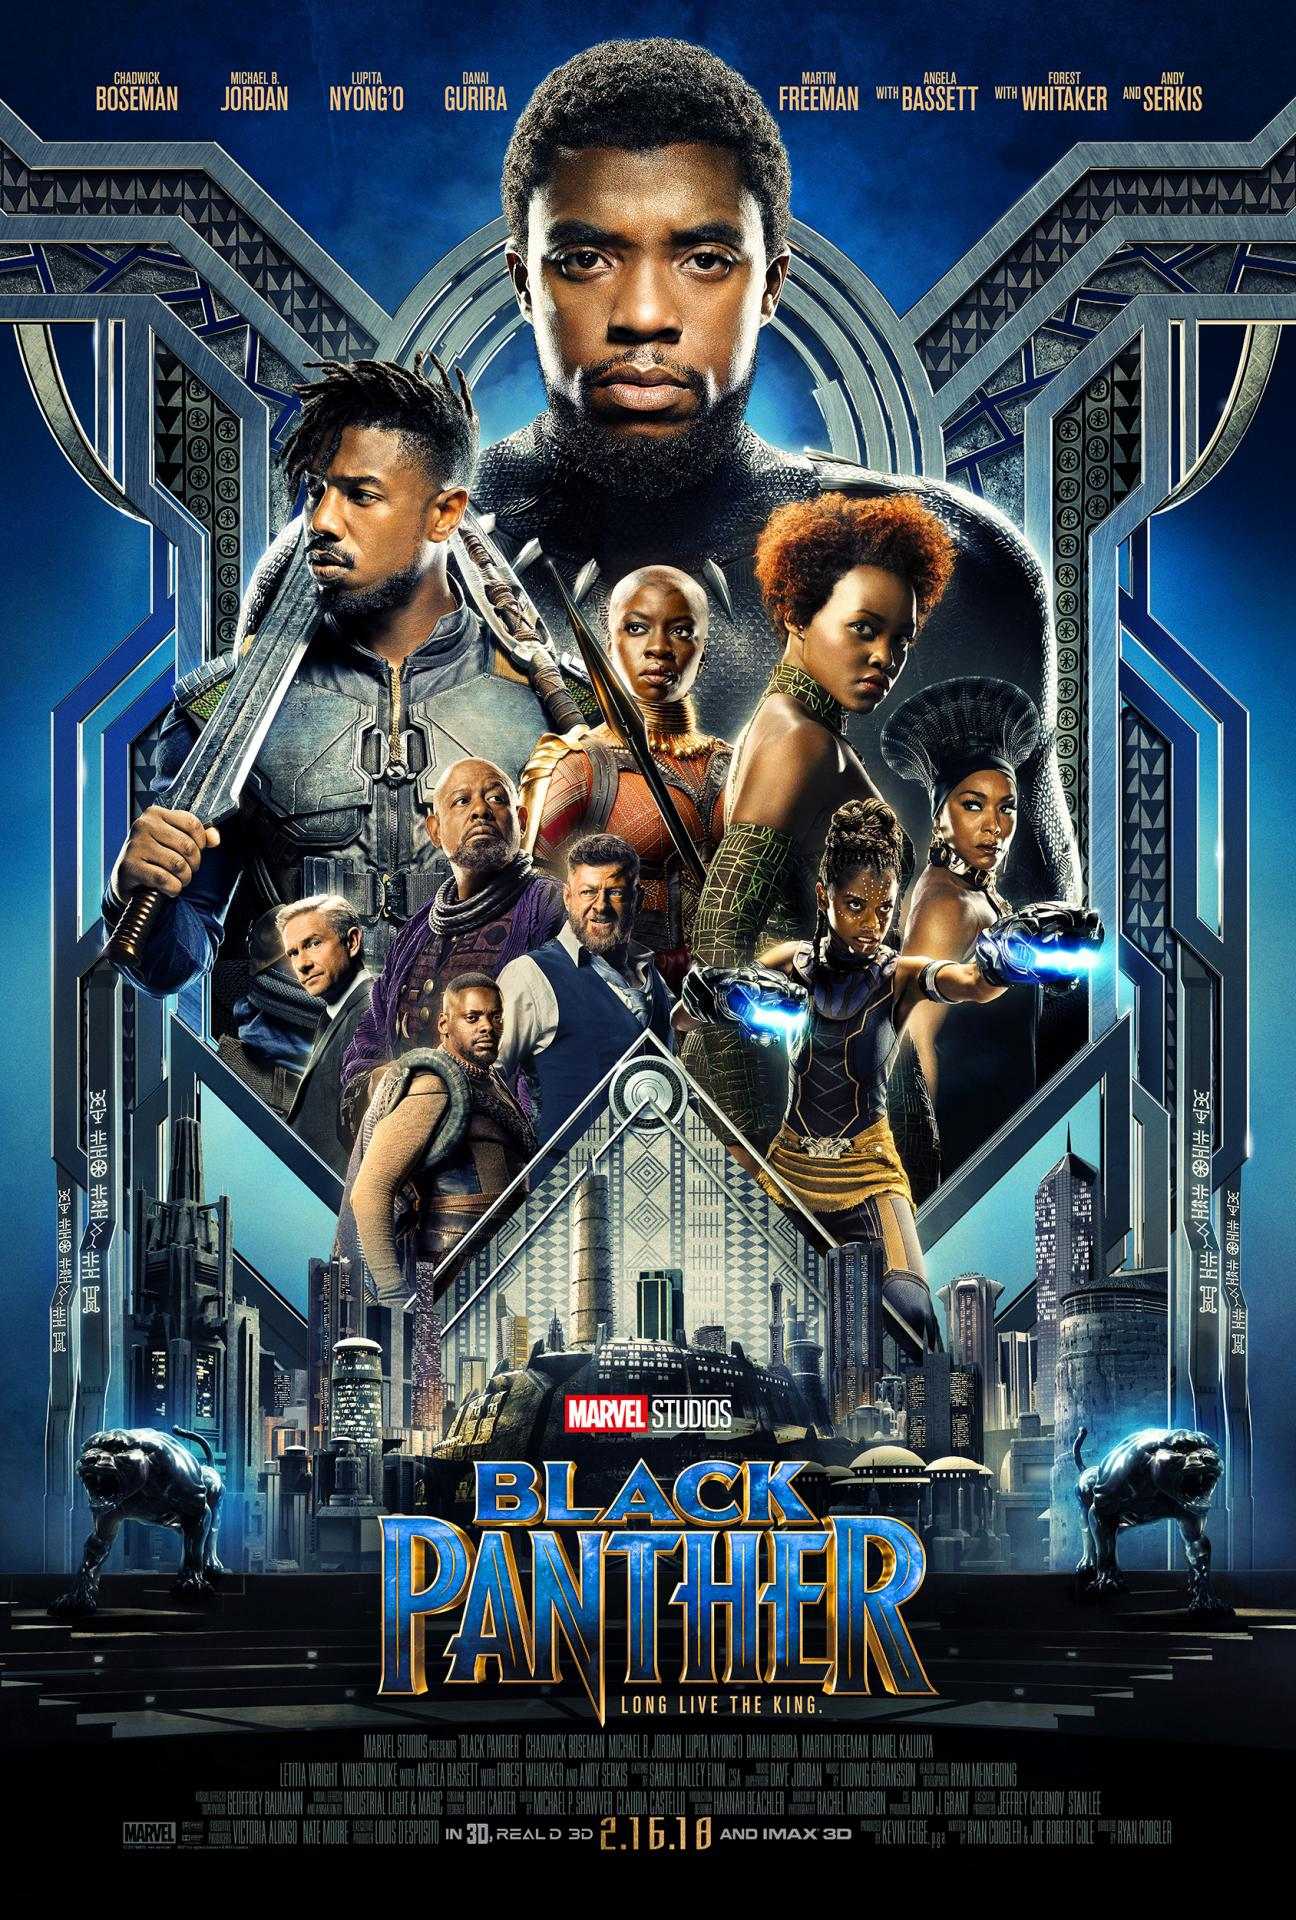 Black panther poster october 2017